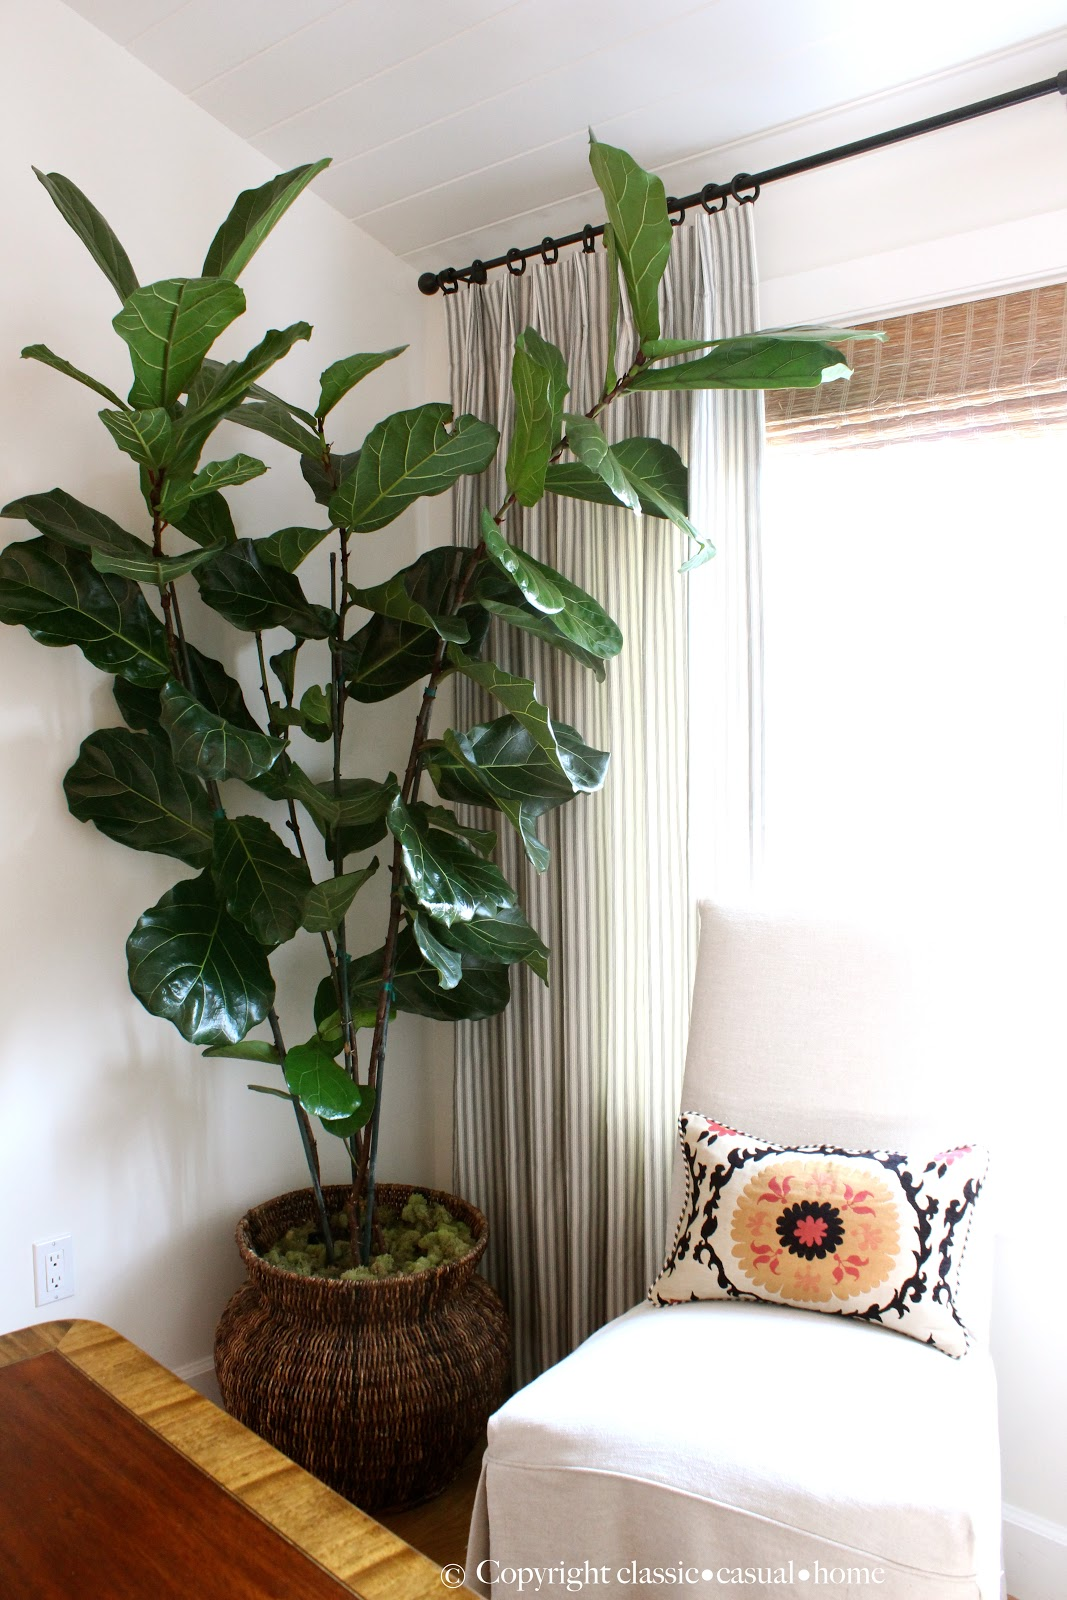 Six easy care indoor plant ideas classic casual home for Indoor greenery ideas